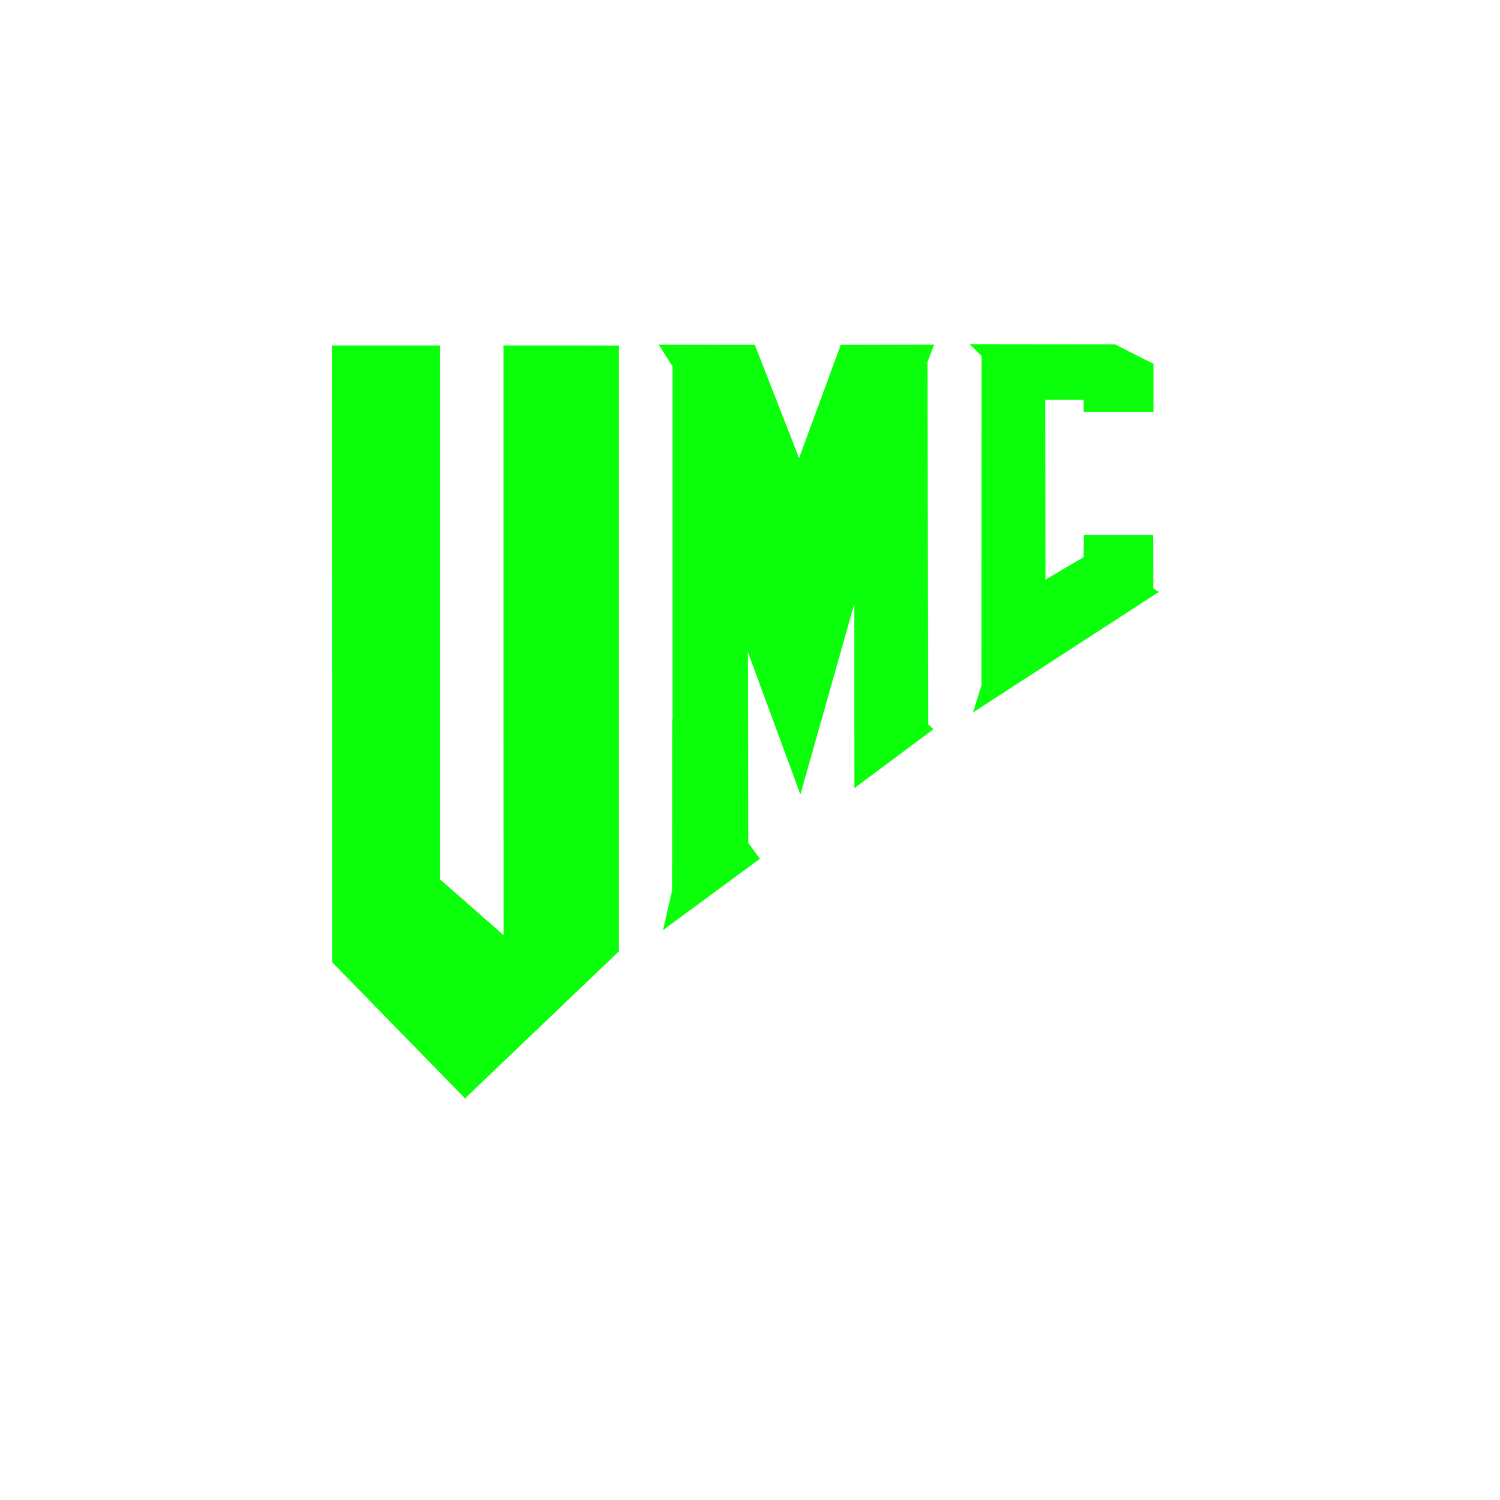 UMC - Ultimate Music Covers logo